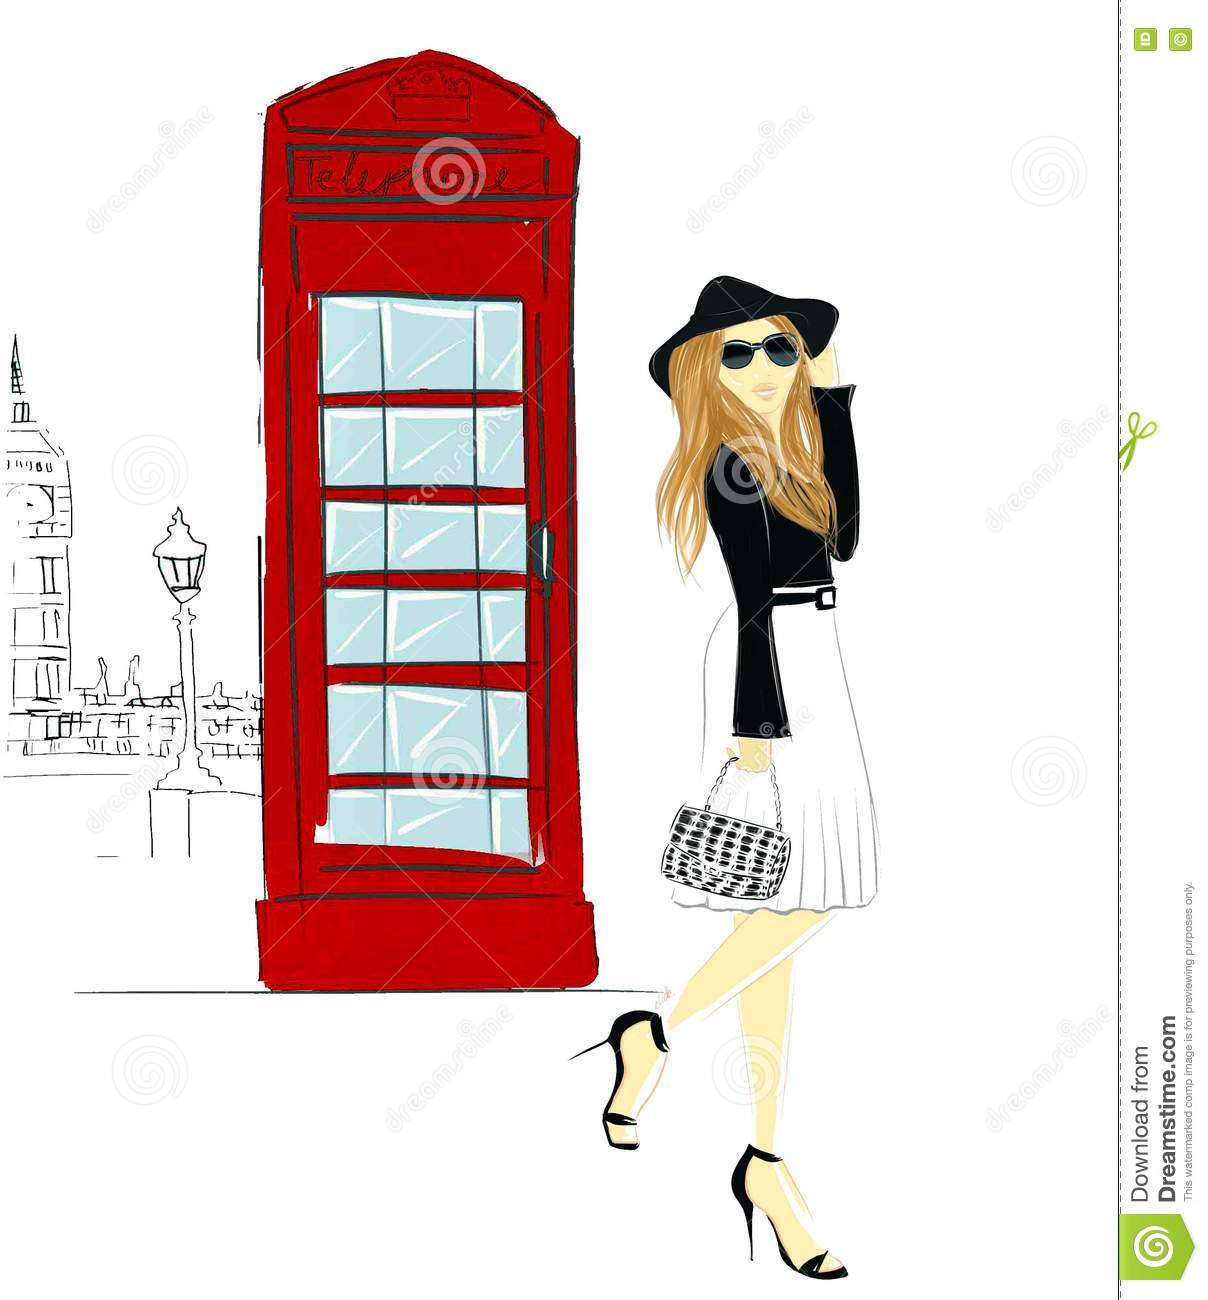 Image result for free cartoon image of a lady in london